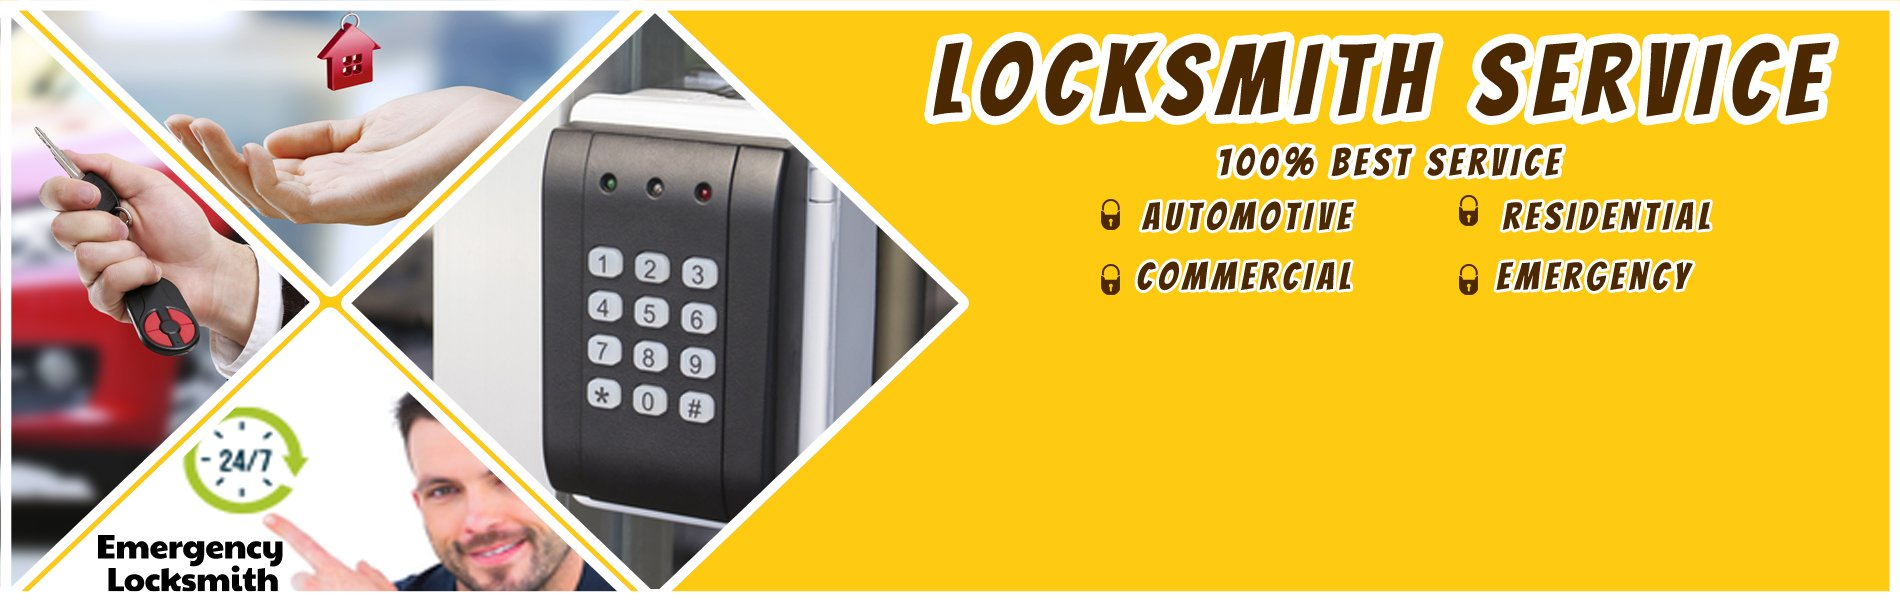 Miami Affordable Locksmith Miami, FL 305-744-5504